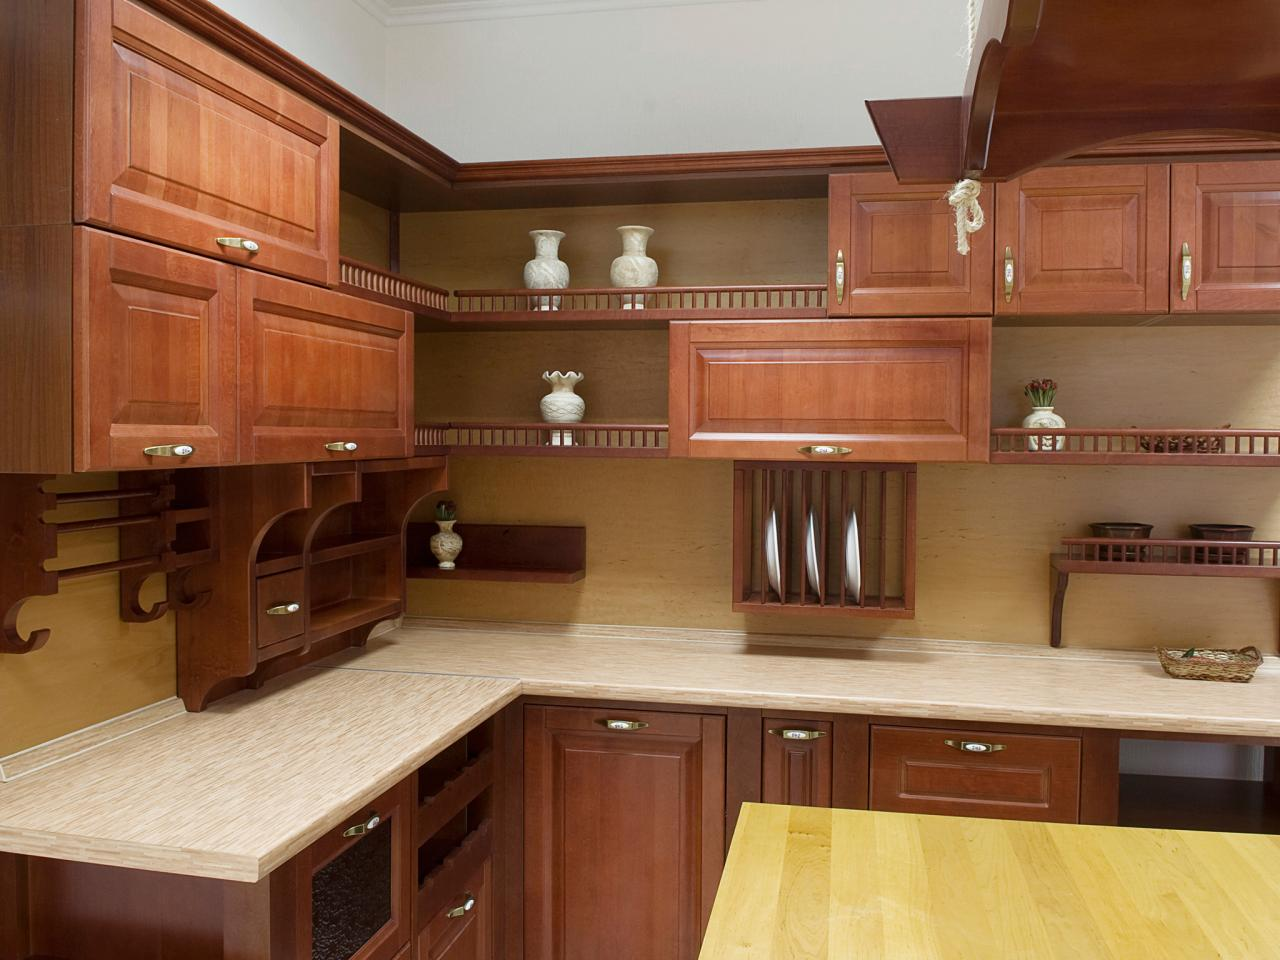 Open kitchen cabinets pictures ideas tips from hgtv hgtv for Small kitchen setting ideas